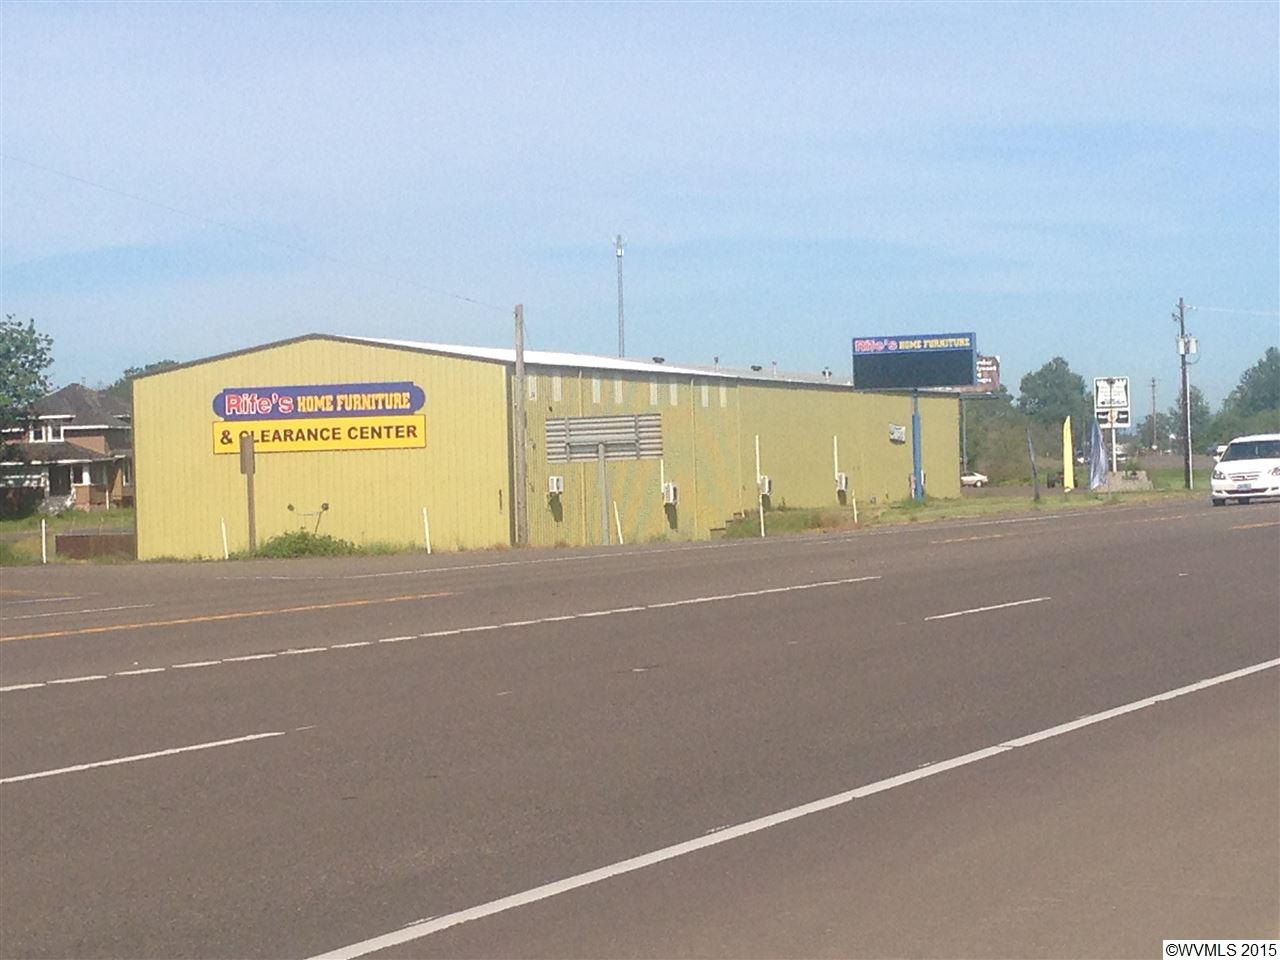 Image of Commercial for Sale near Albany, Oregon, in Linn county: 1.83 acres